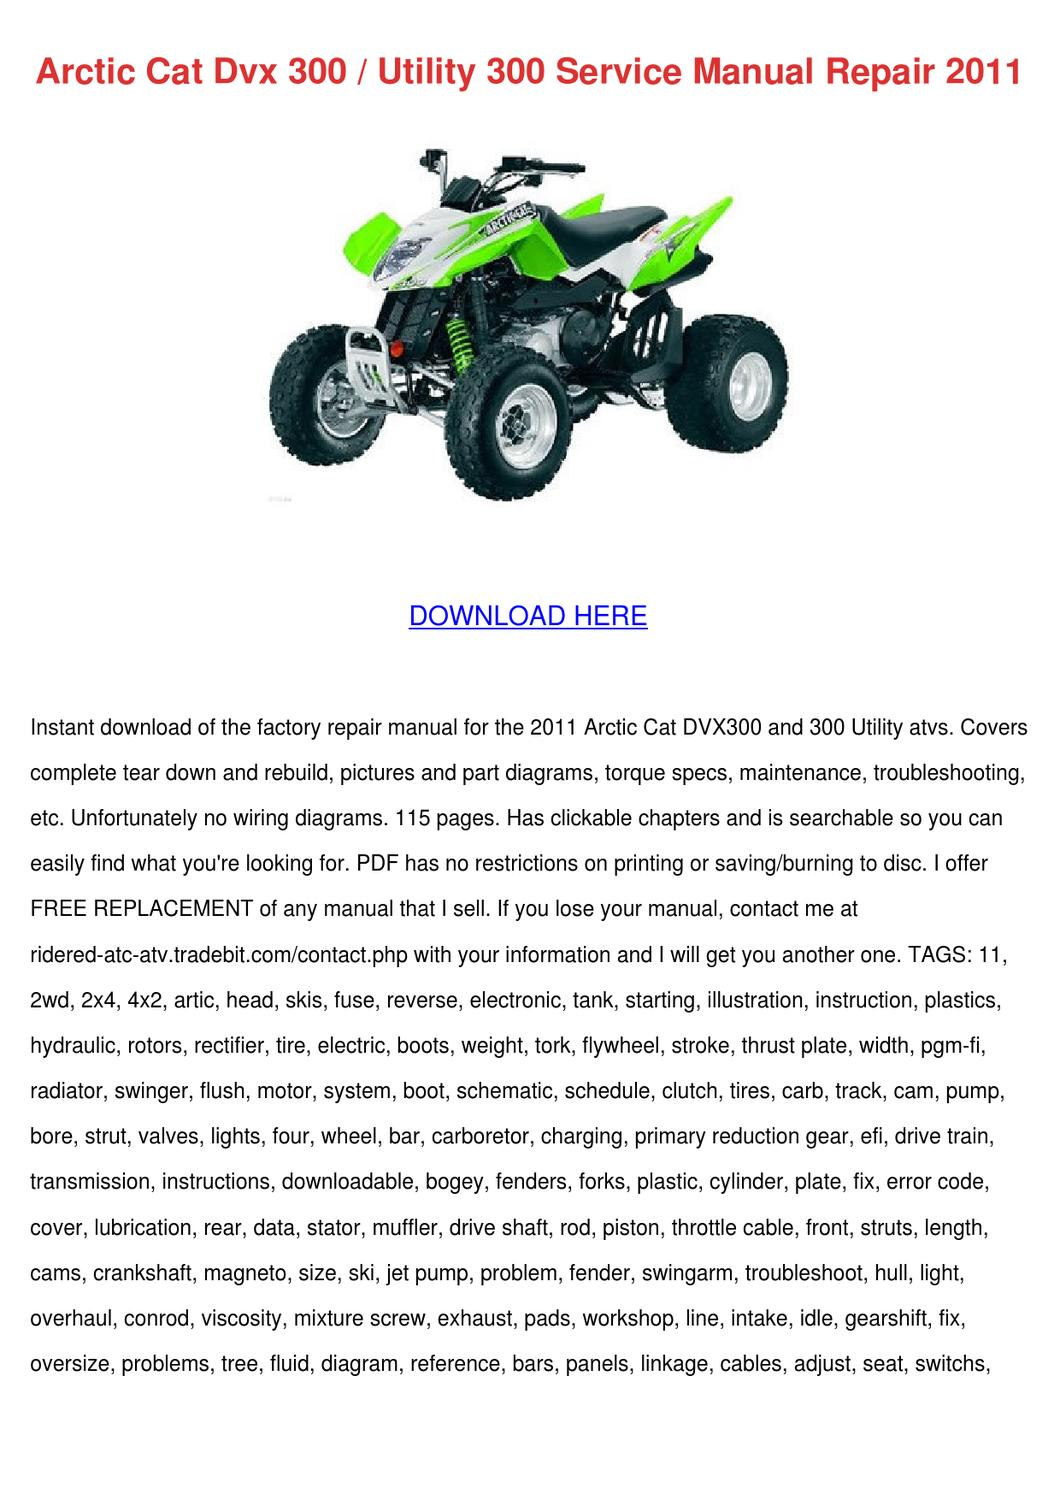 Arctic Cat Dvx 300 Utility 300 Service Manual By Tennie